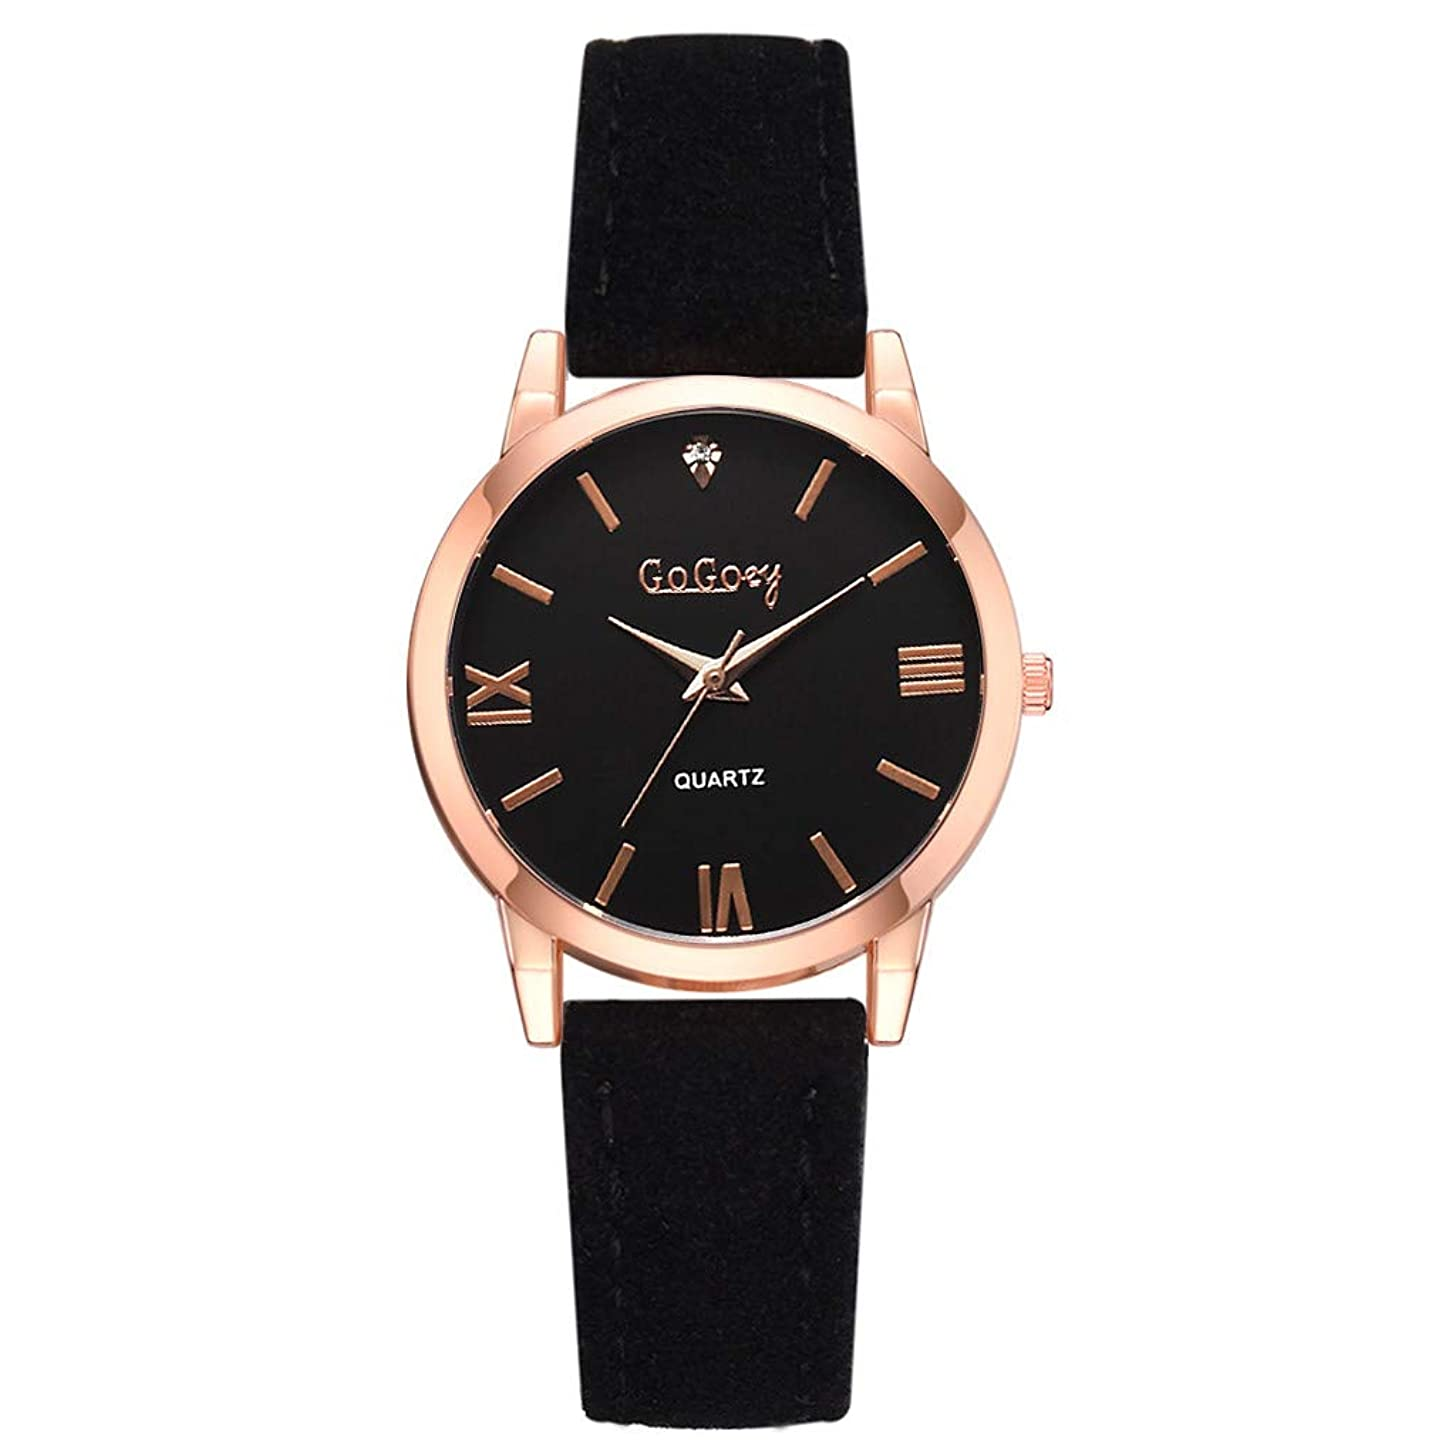 LUCAMORE Womens Analog Watches Quartz Wristwatch Casual Watch Unique Dress Watch Round Dial Leather Strap Jewelry Gift